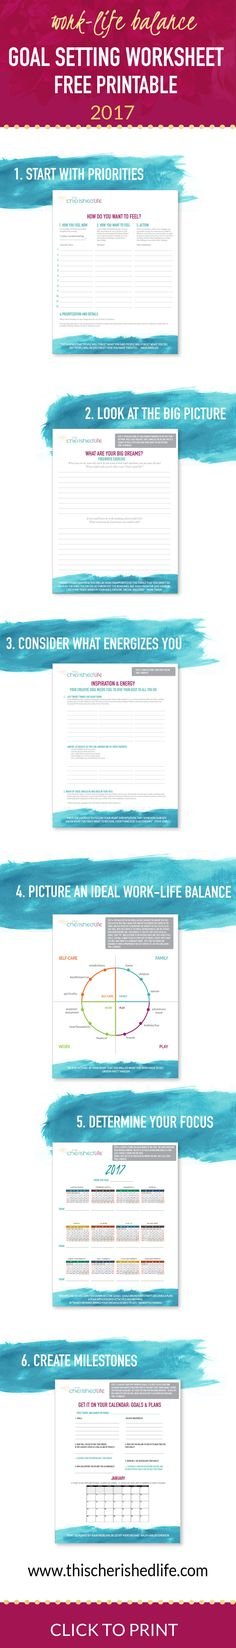 FREE 2017 Goal Setting Printable Worksheets {newsletter subscription required}